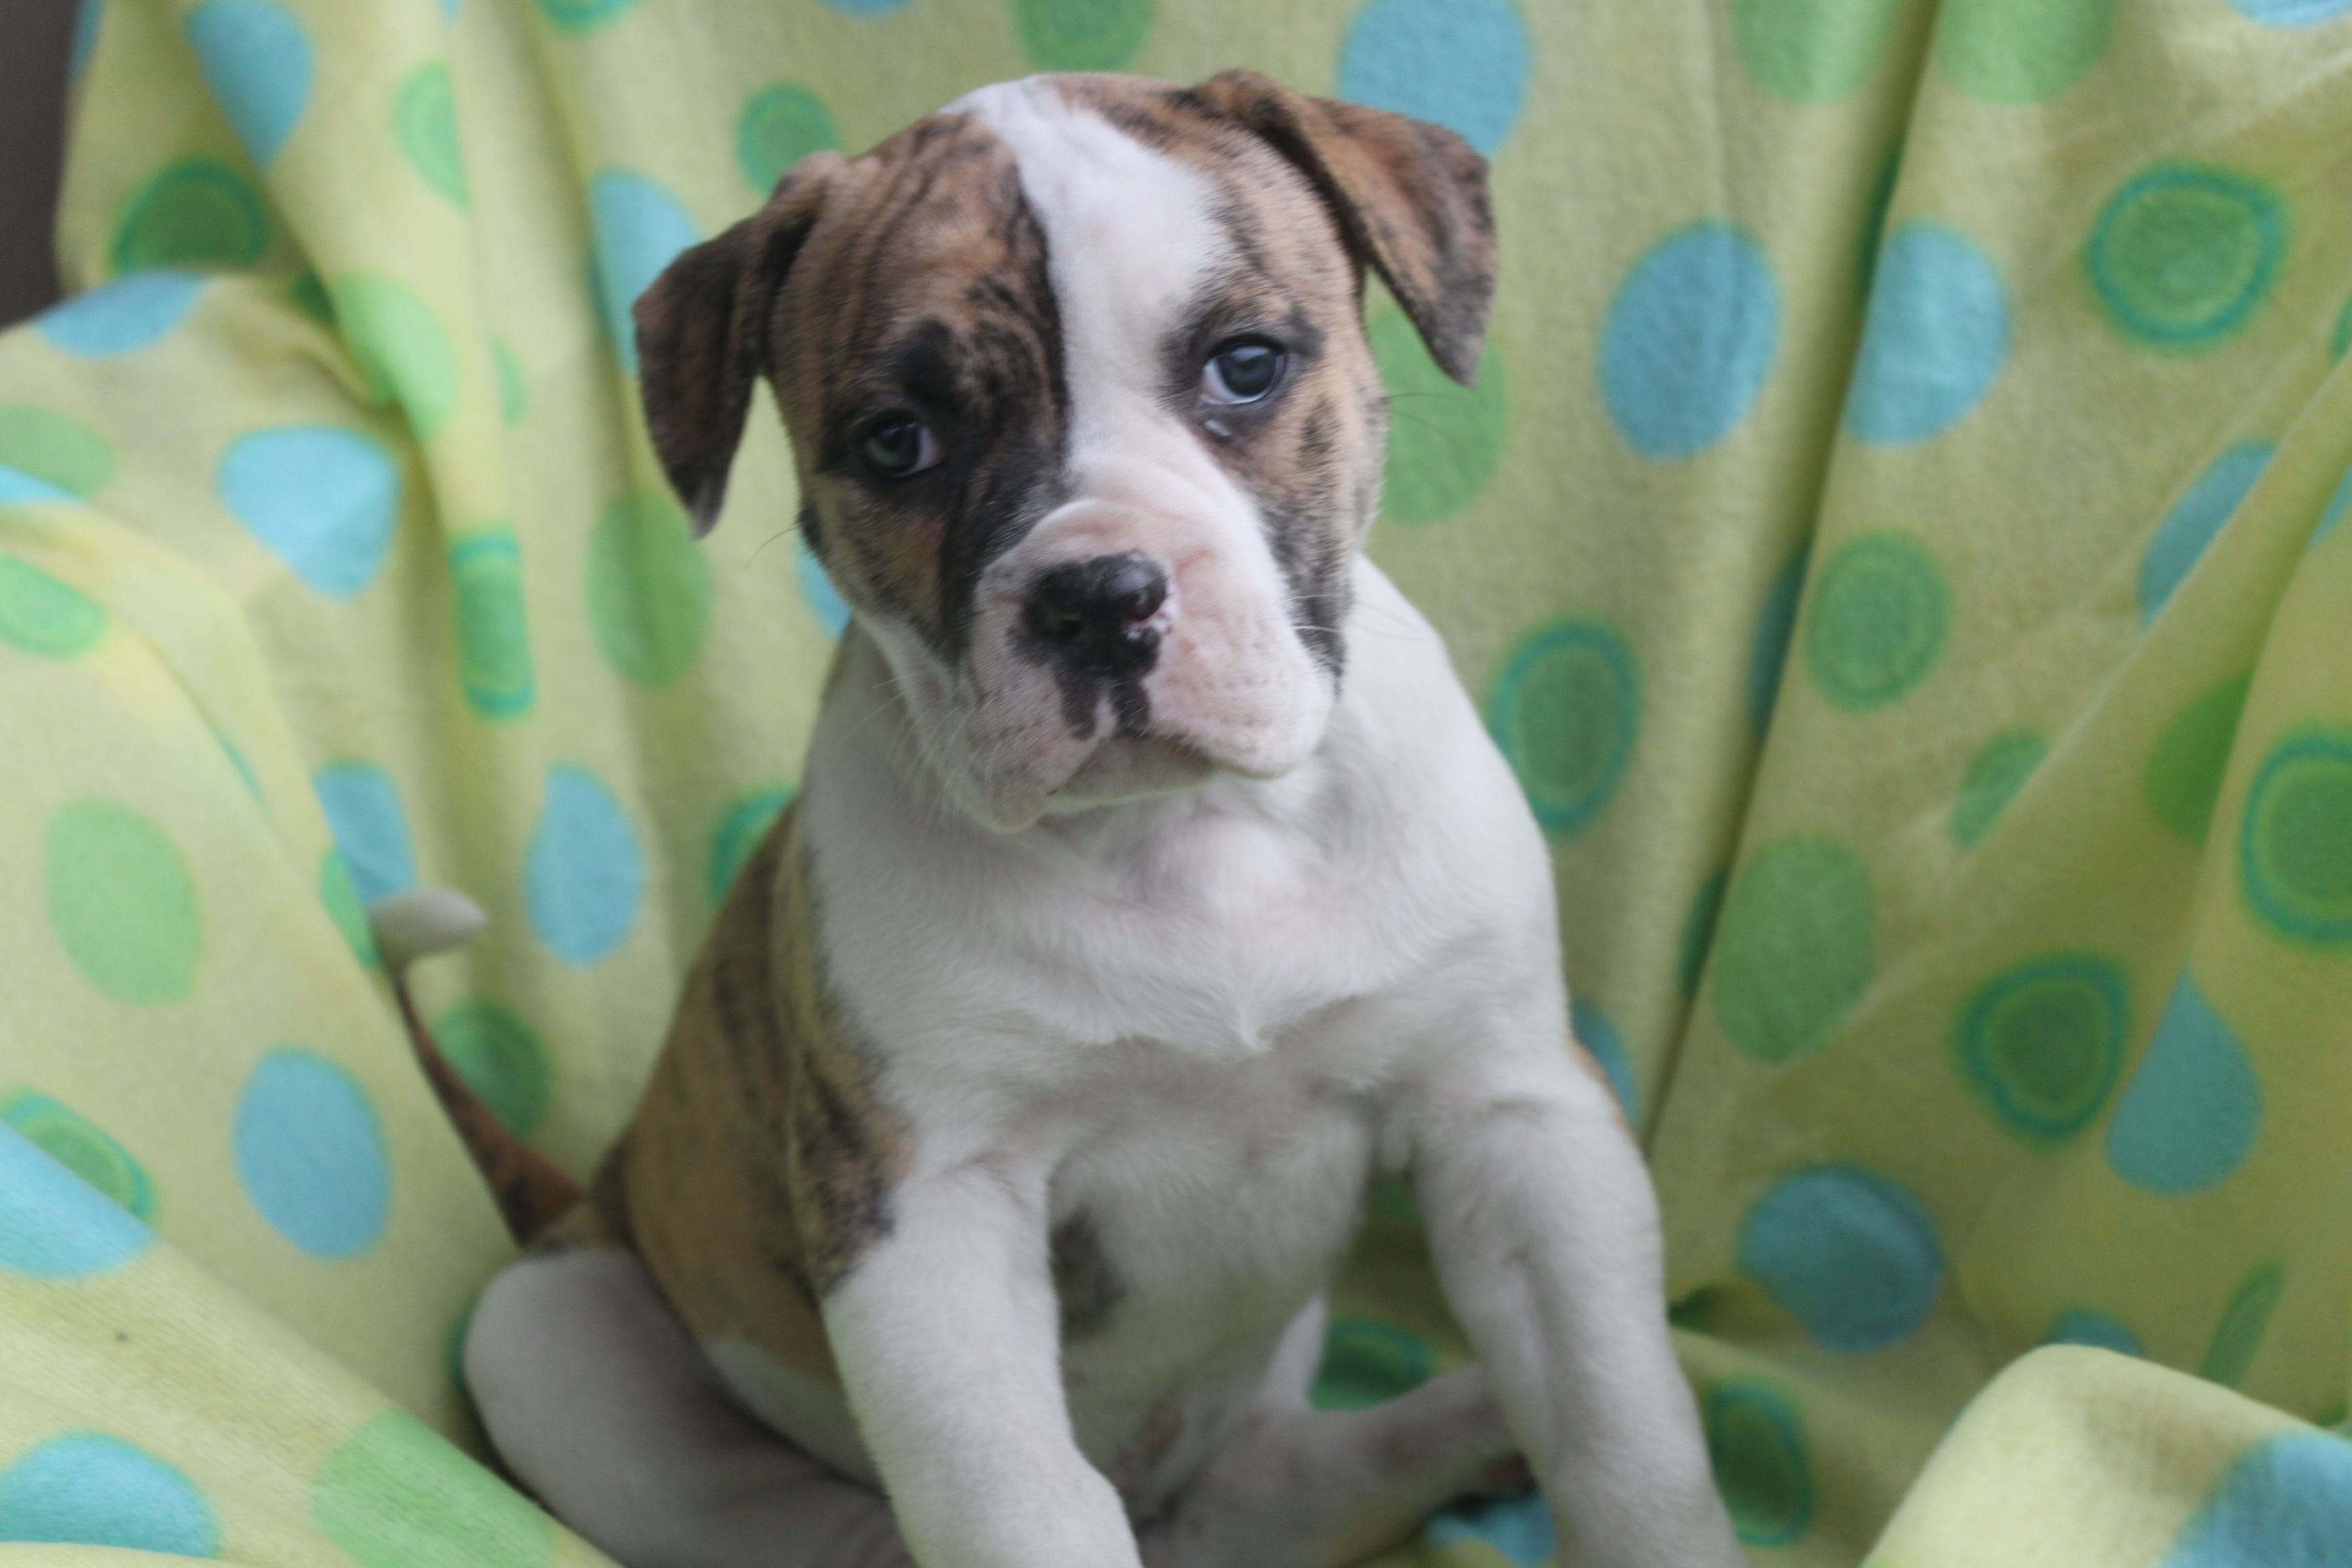 American Bulldog Puppy Here Is A 7 Week Old American Bulldog Puppy At Http Www Cutepuppi American Bulldog Puppies American Bulldog For Sale Bulldog Puppies